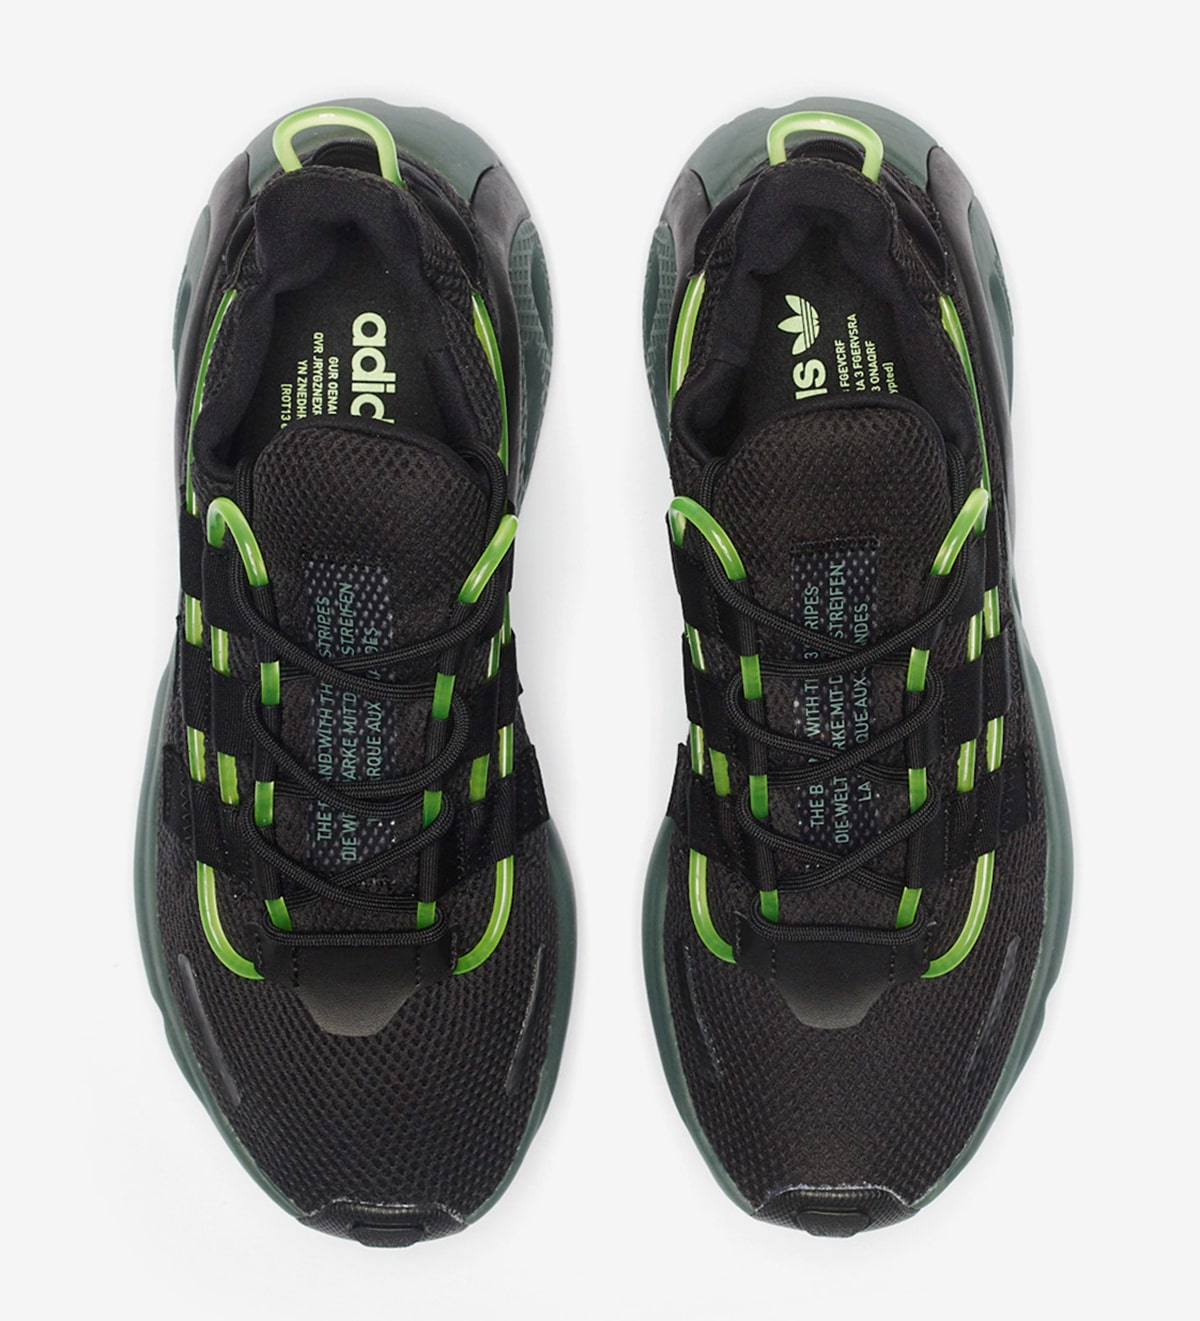 The adidas LXCON is Lookin' Mean in Black 'n' Green HOUSE